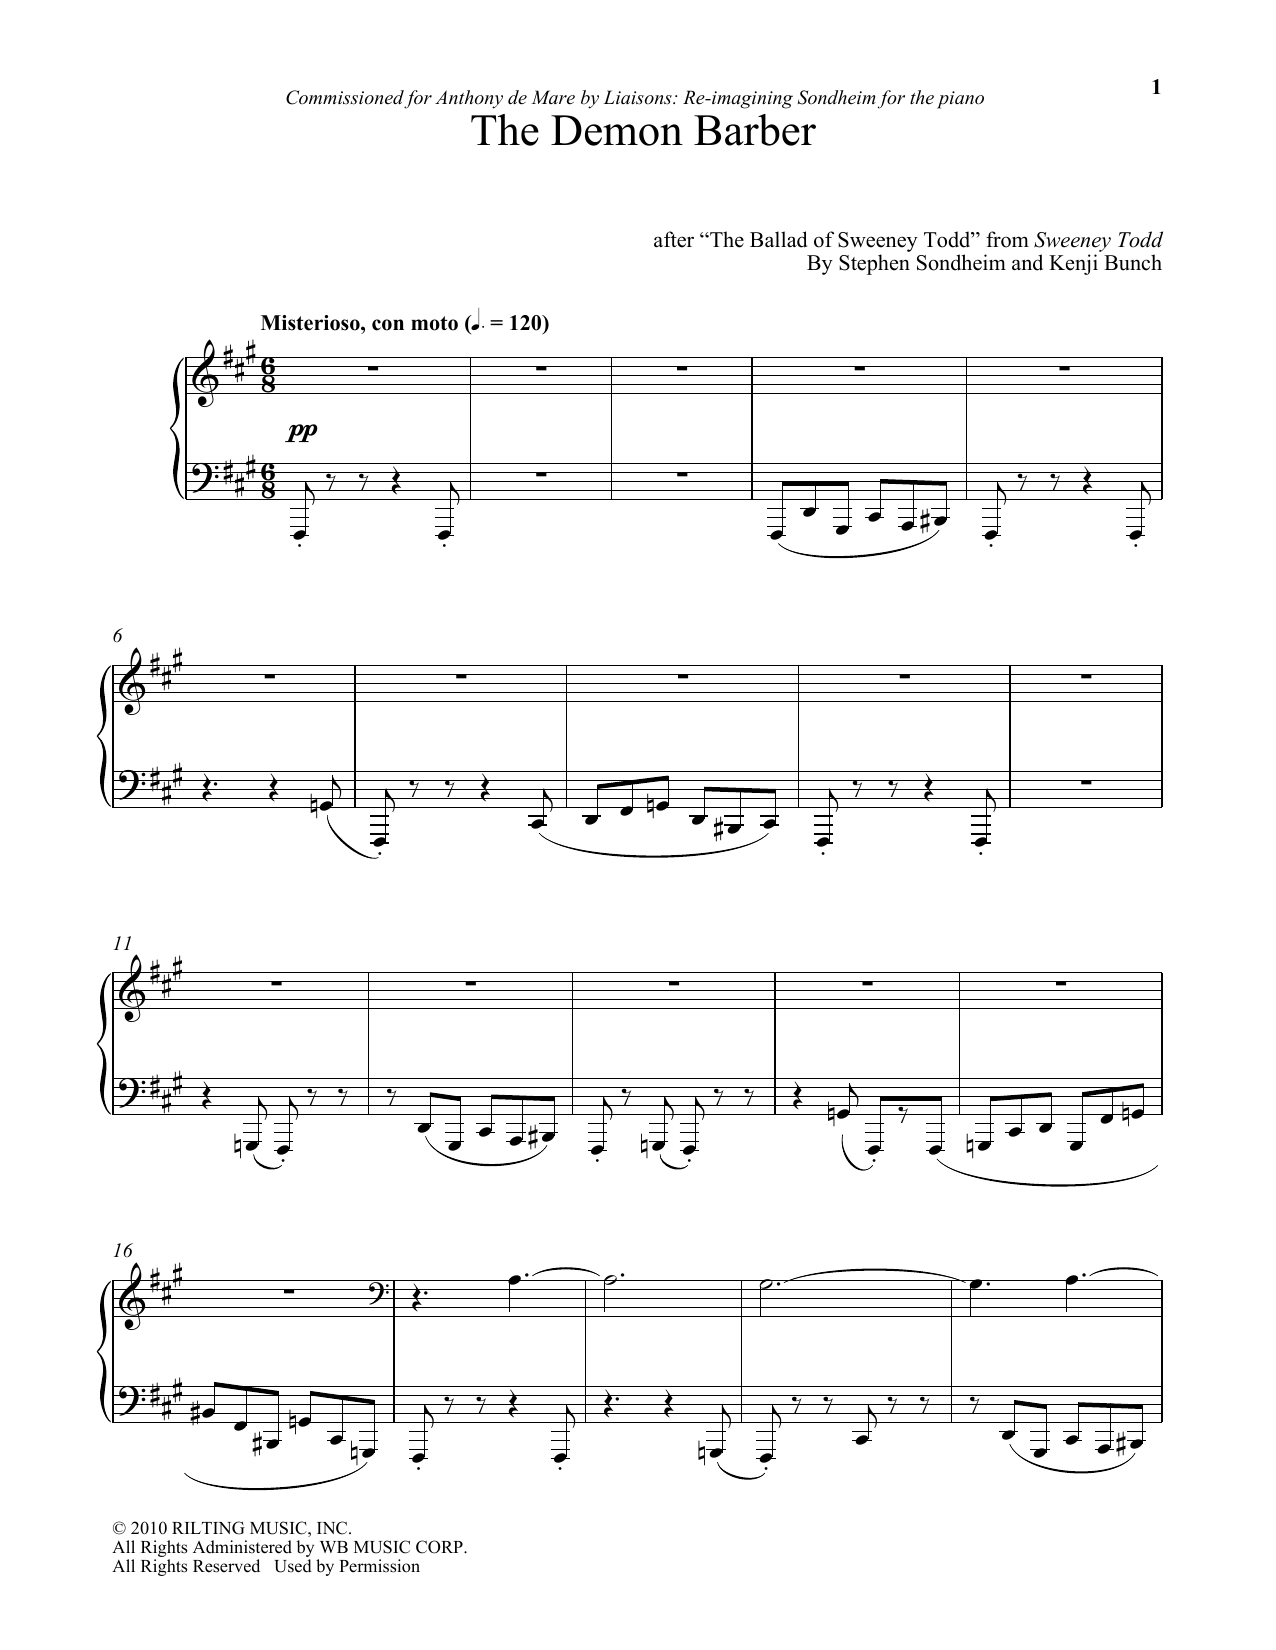 Stephen Sondheim The Demon Barber (arr. Kenji Bunch) sheet music notes and chords. Download Printable PDF.